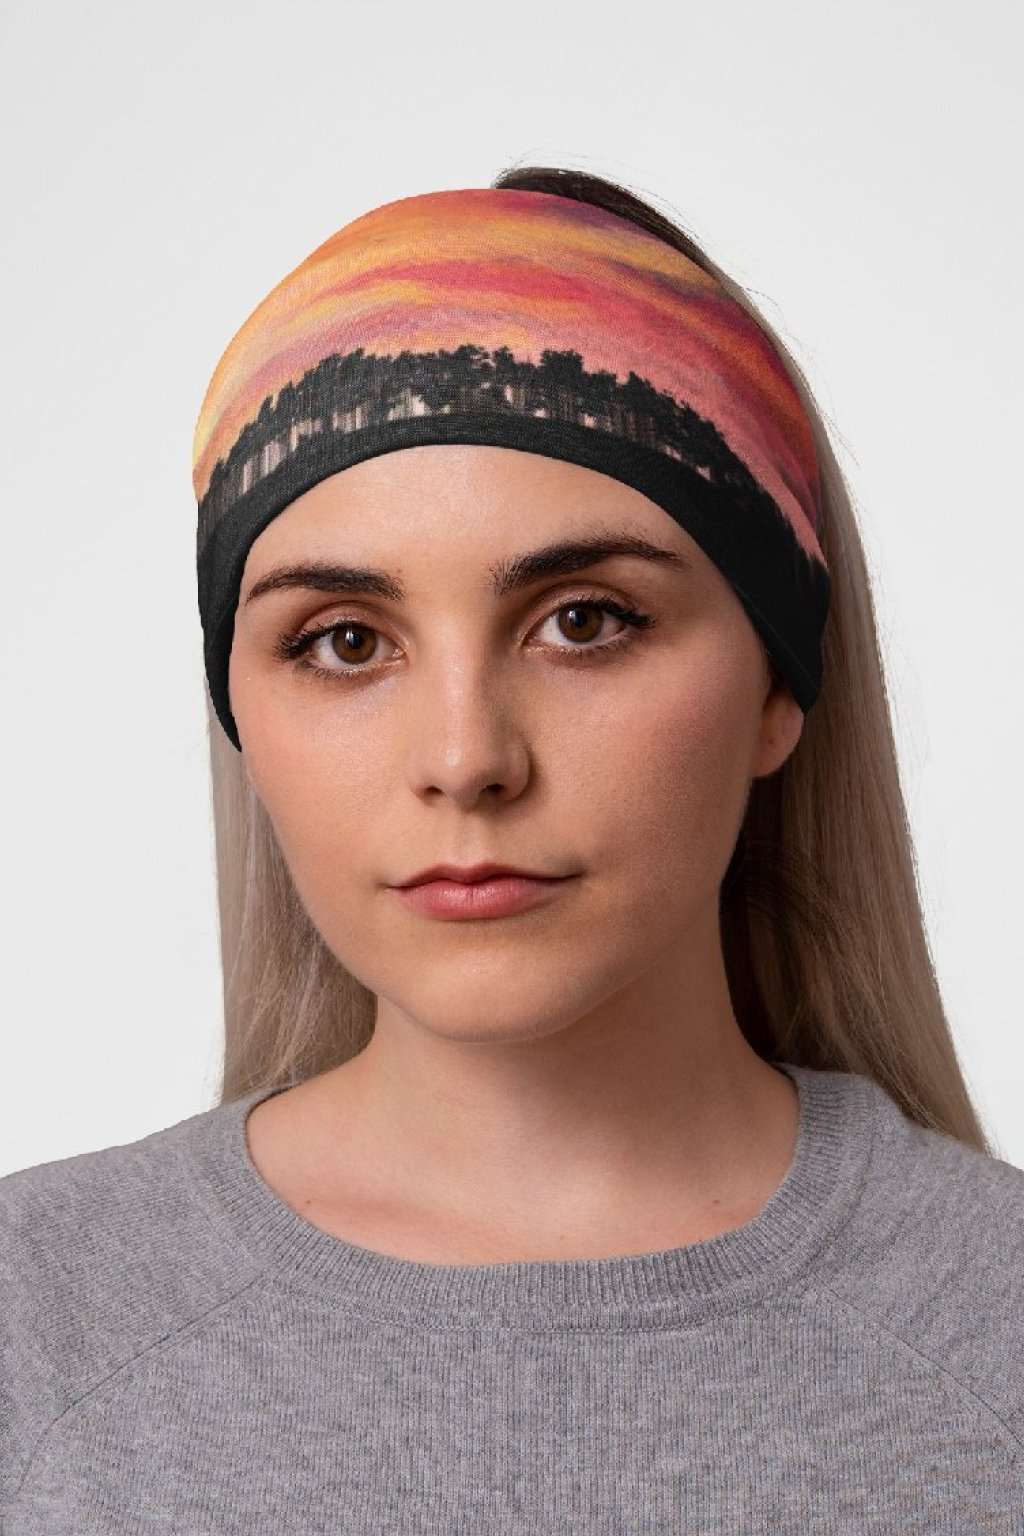 mockup of a woman at a studio with a tubular bandana on her head 36078 (7)